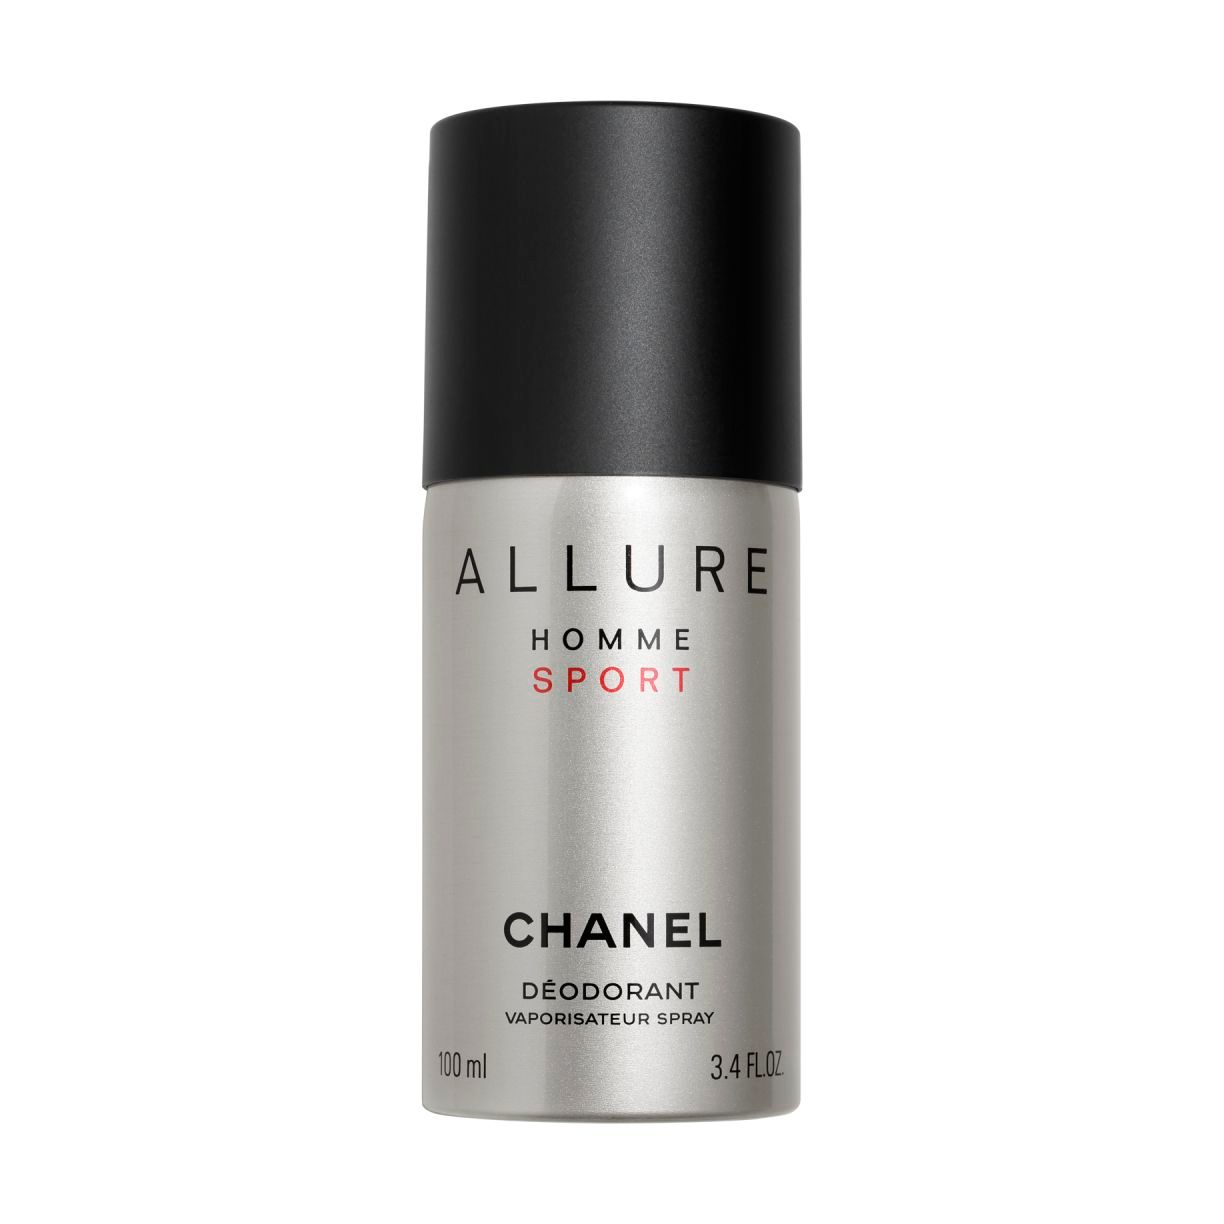 ALLURE HOMME SPORT SPRAY DEODORANT